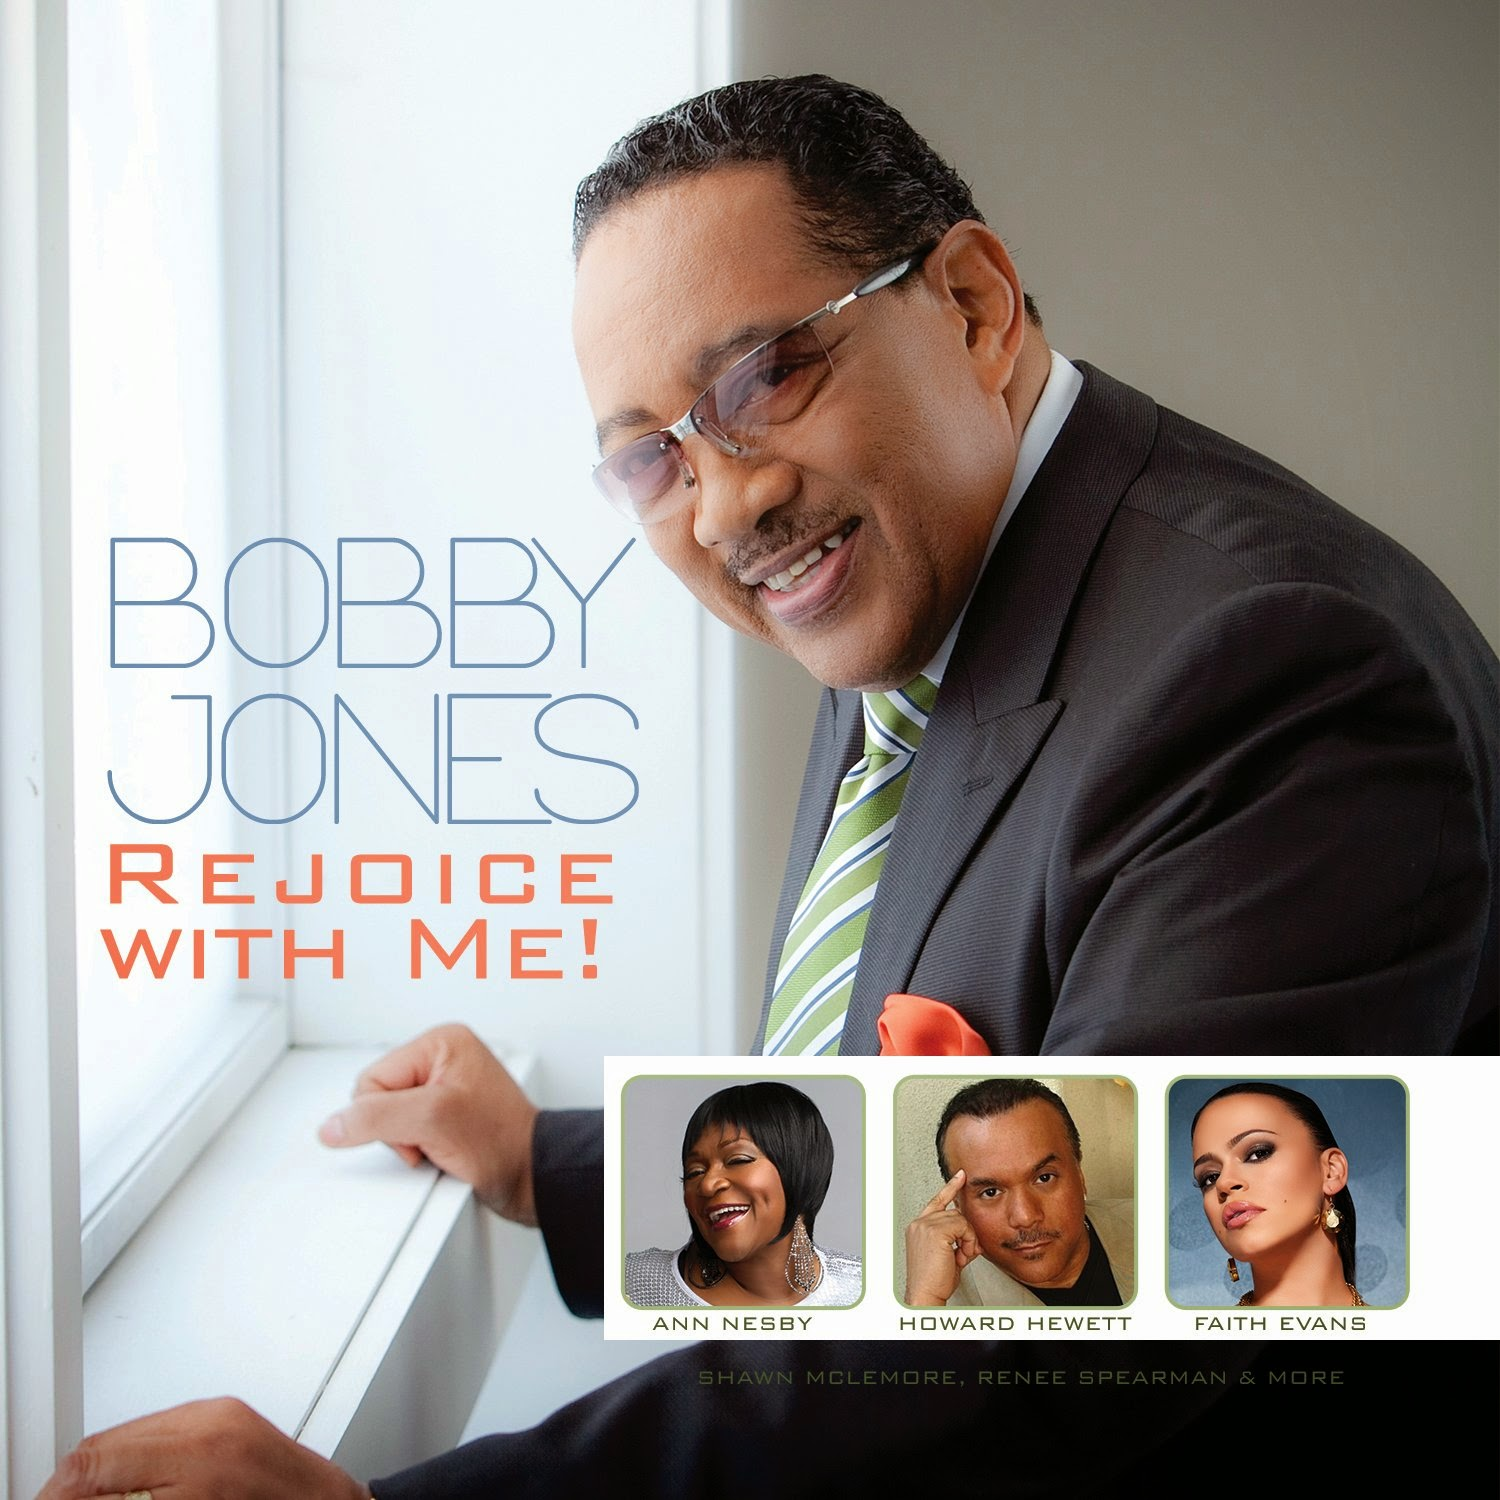 Bobby Jones - Rejoice With Me 2014 English Christian Gospel Album Download